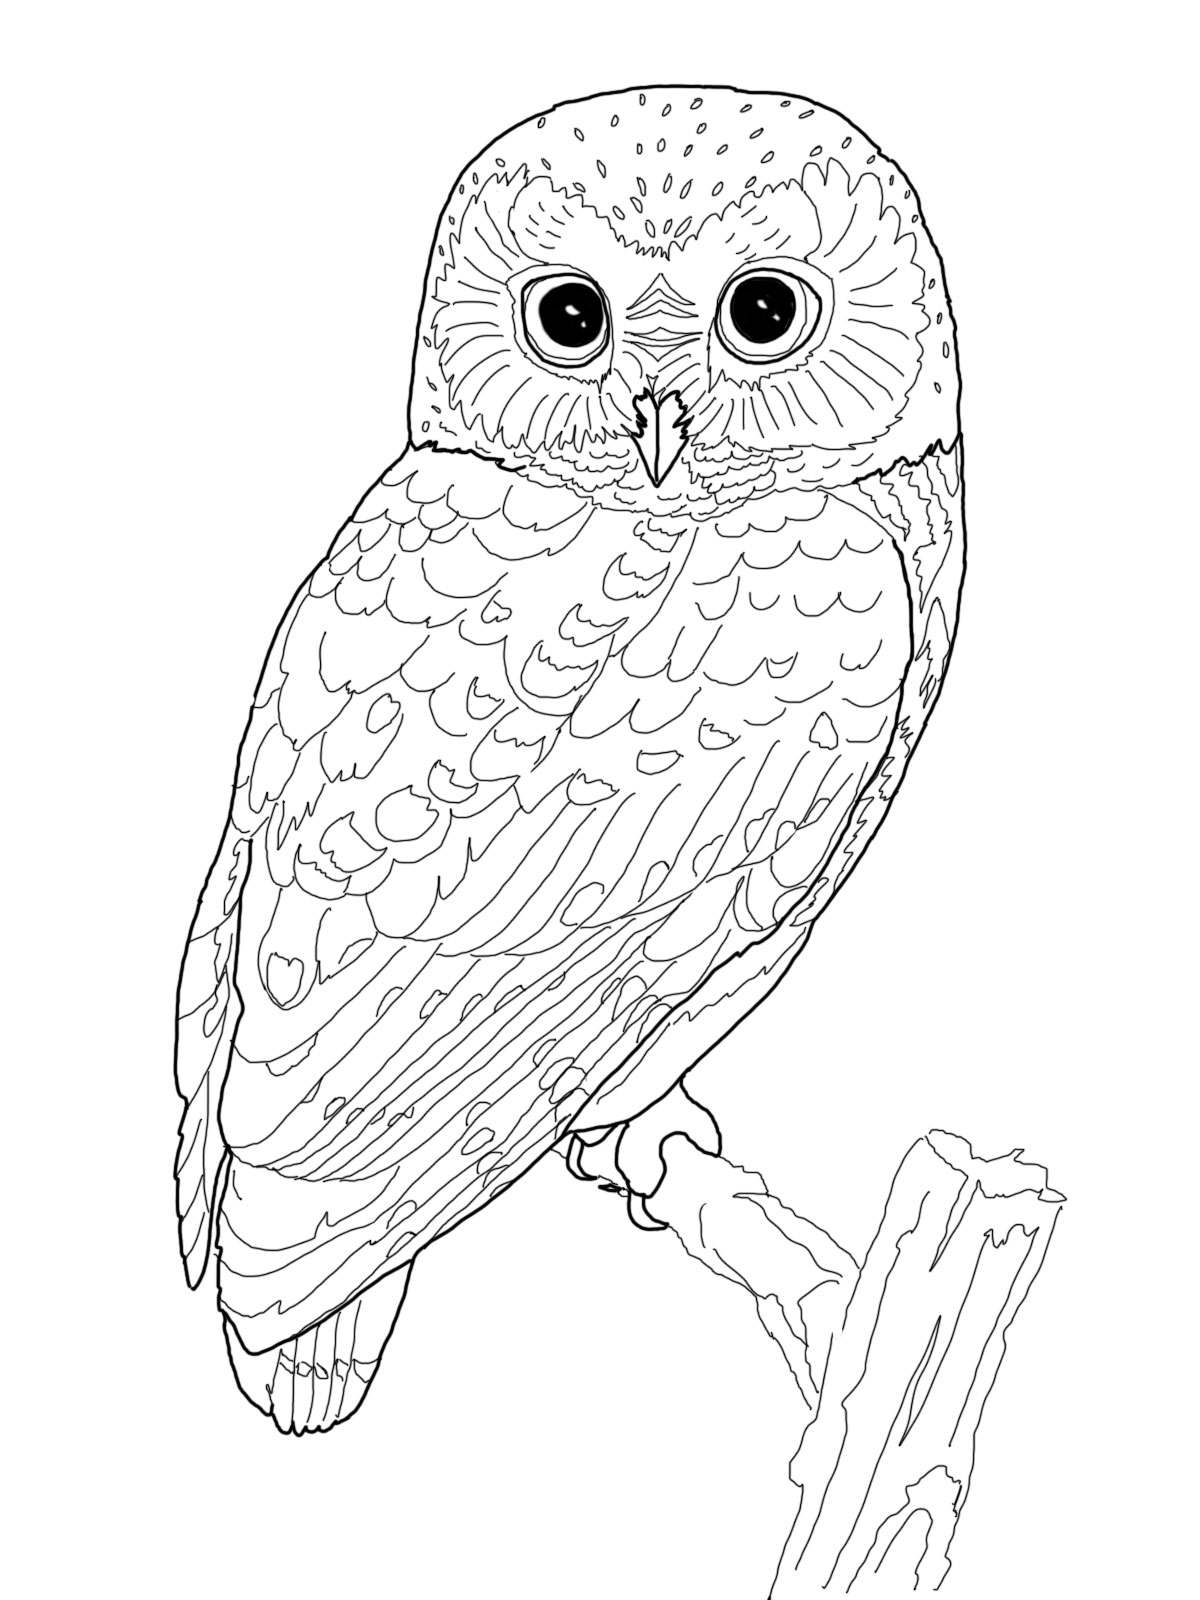 owl colouring owl coloring pages for adults free detailed owl coloring colouring owl